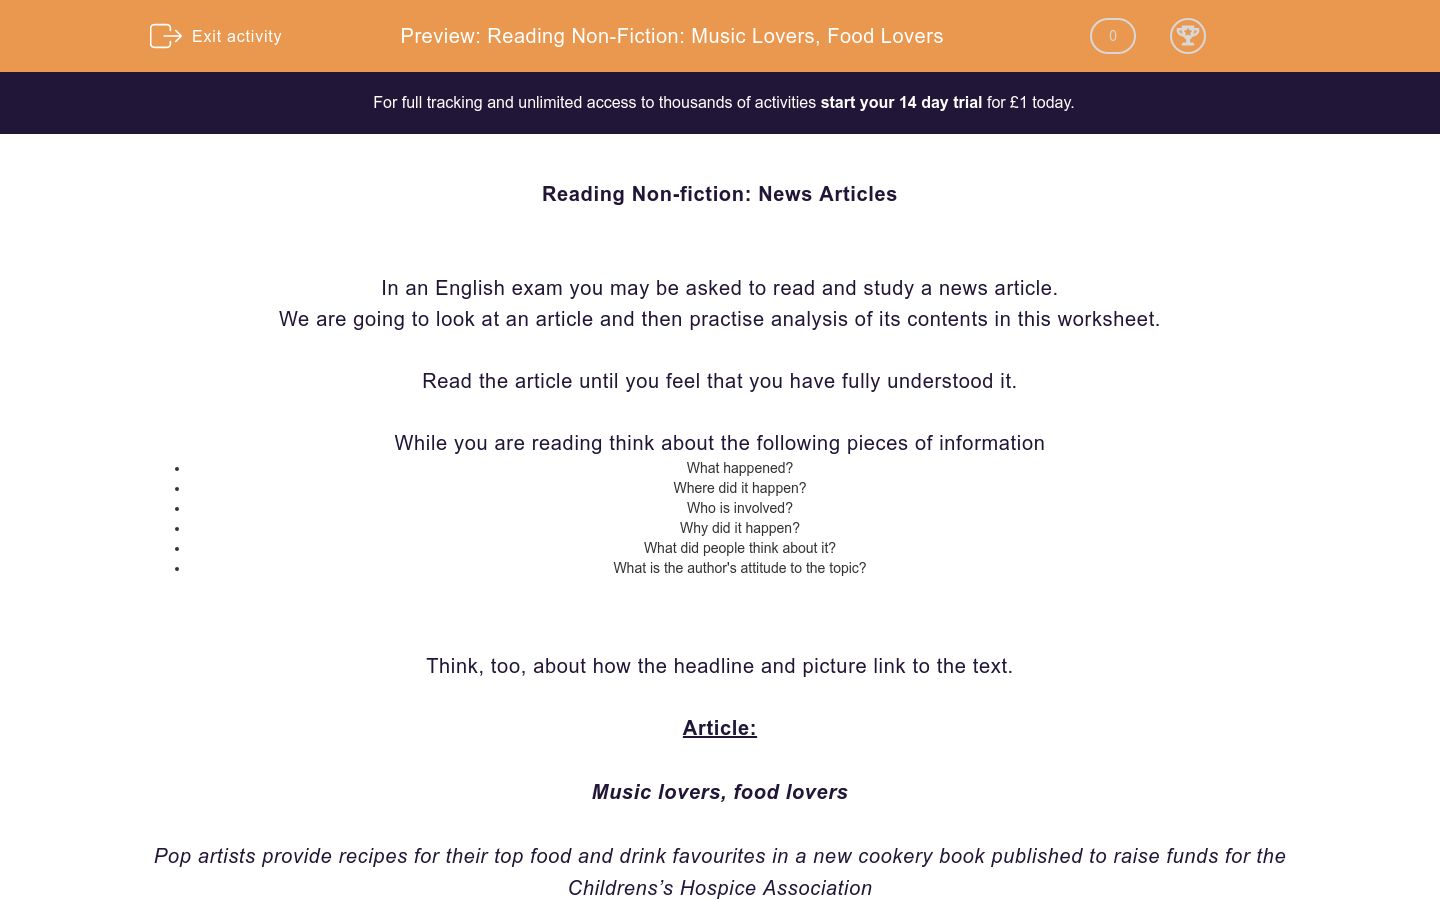 'Reading Non-Fiction: Music Lovers, Food Lovers' worksheet